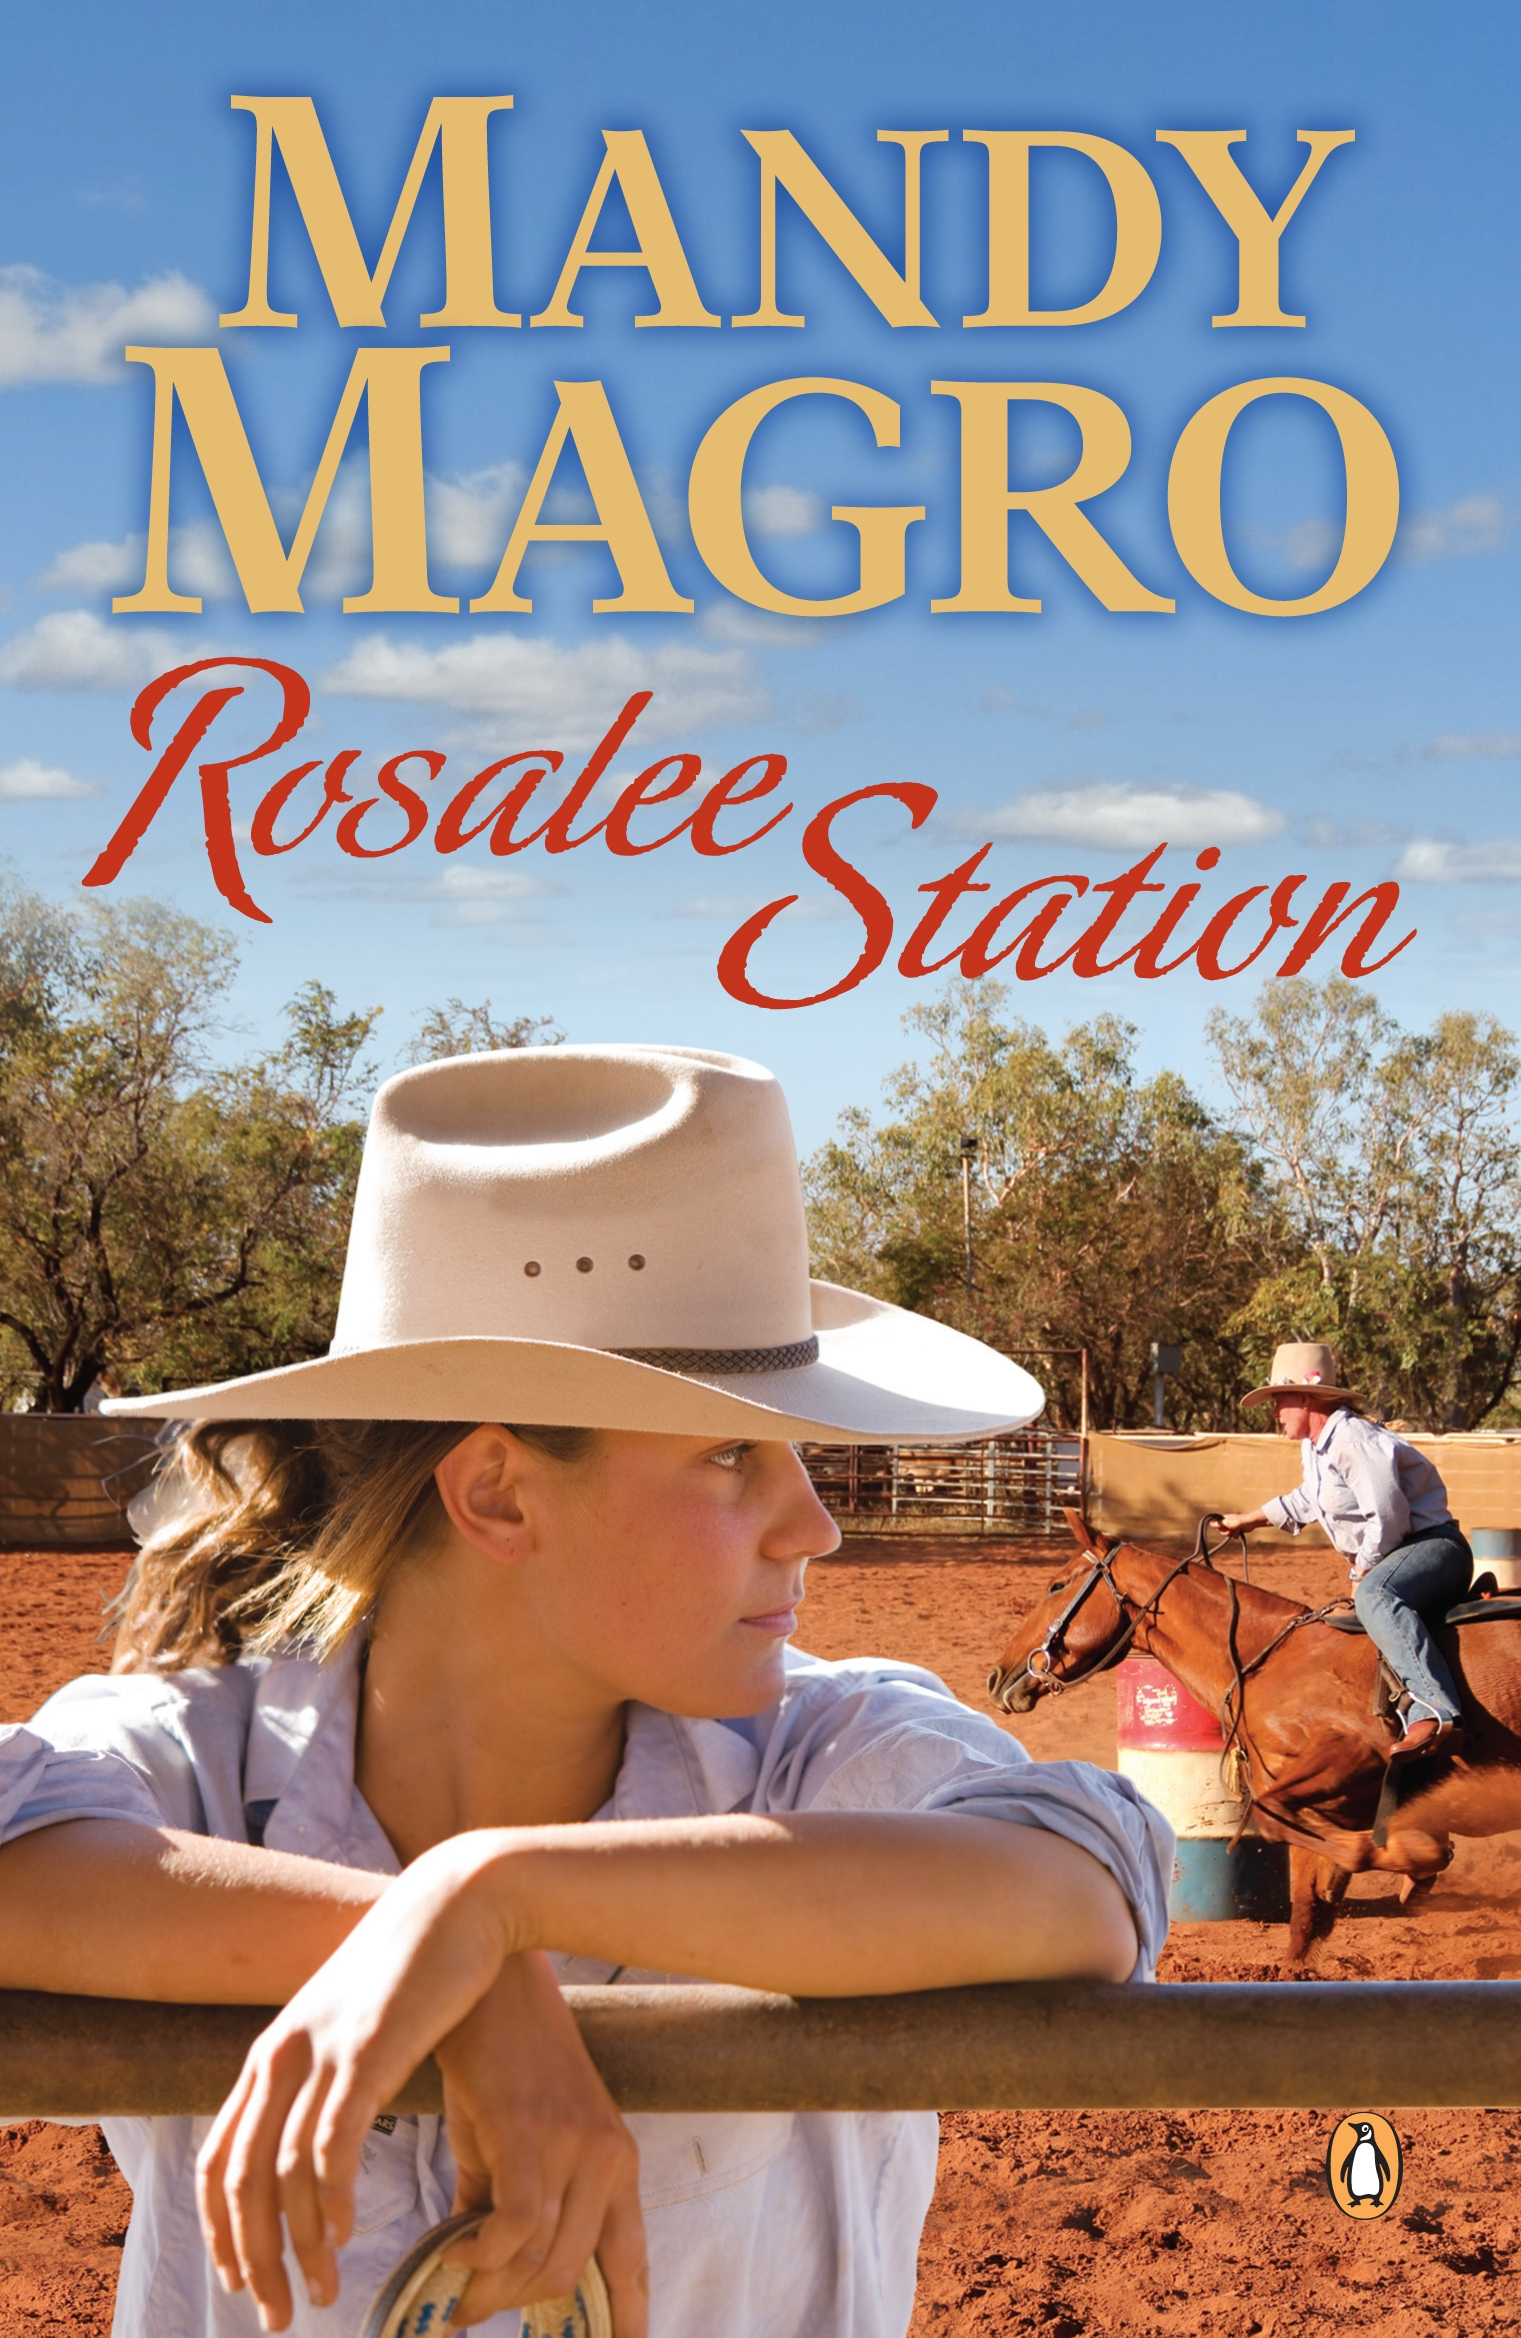 Book Cover:  Rosalee Station